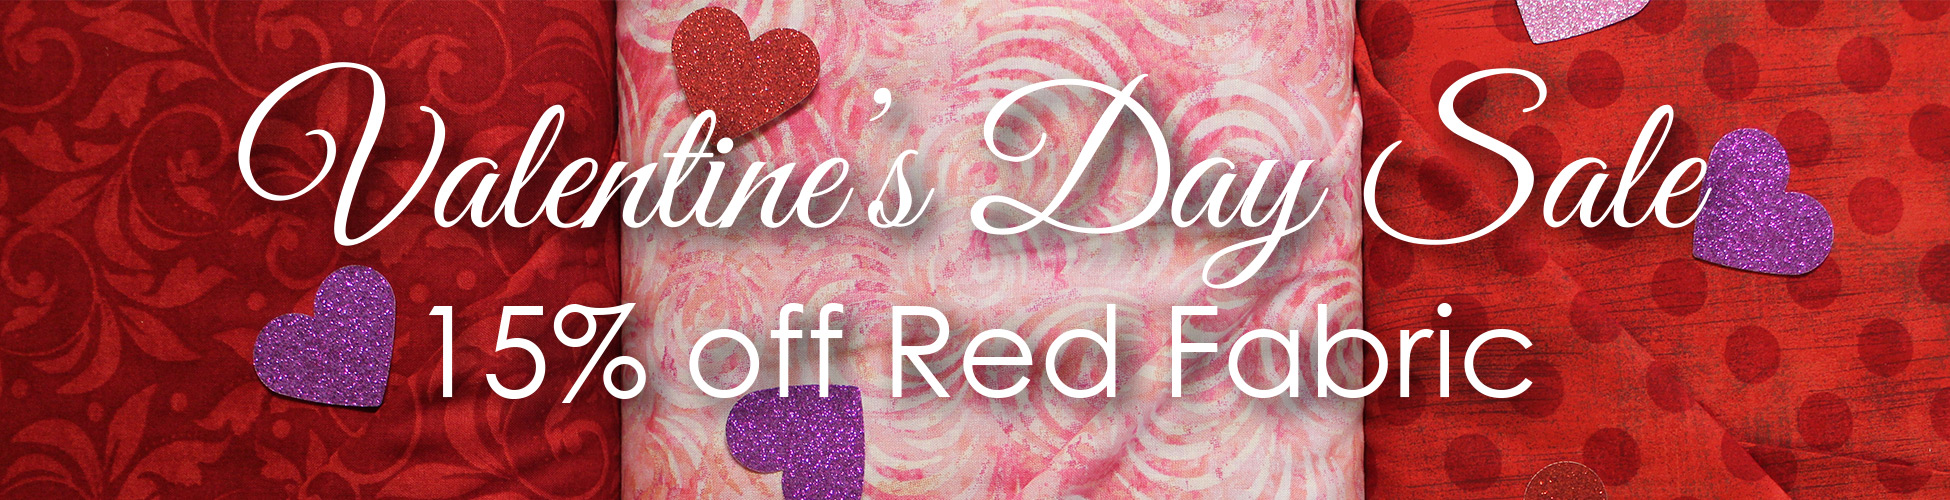 Valentine's Day Sale 15% off Red Fabric, Feb 14-18, 2019